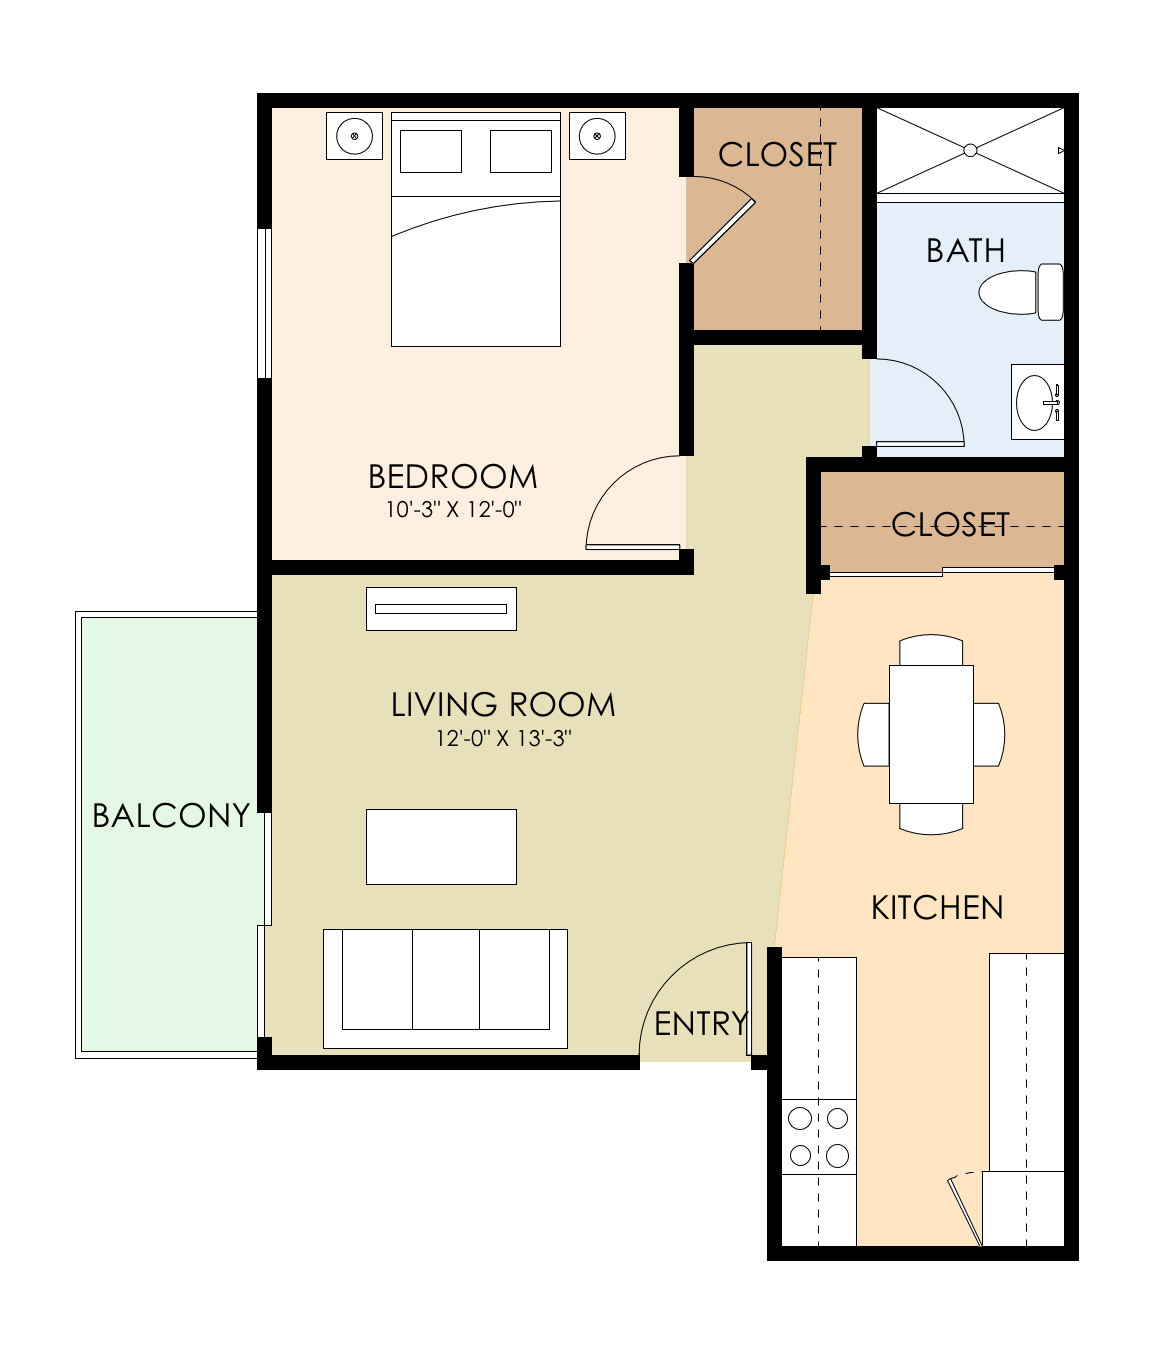 Sunnyvale Town Center Apartments: Floor Plans Of Sunnyvale Town Center In Sunnyvale, CA